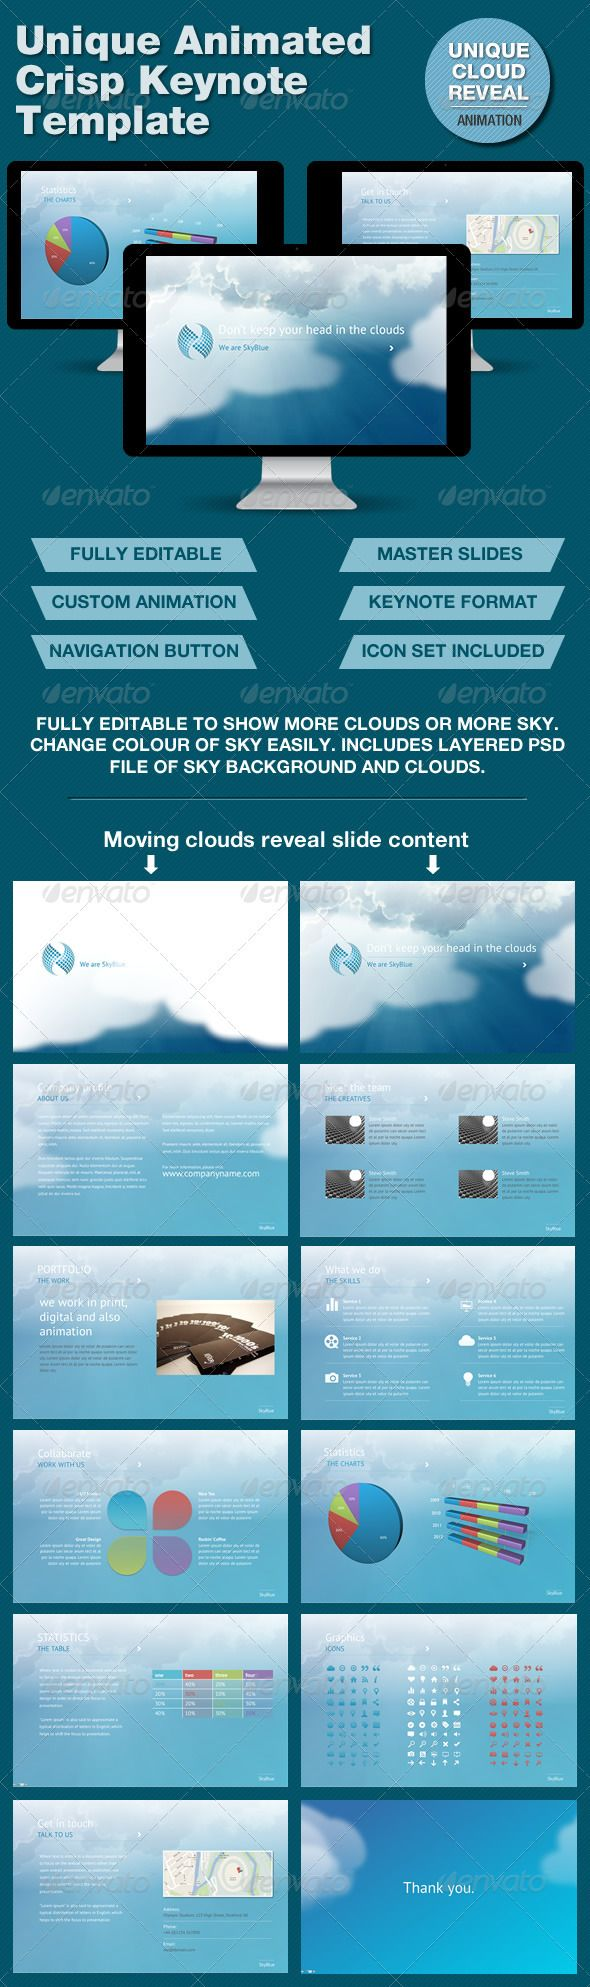 SkyBlue Keynote Template with Unique Animation  #GraphicRiver         The slides start off with clouds shrouding the content, then slide left, right and up to reveal the slide content. It's fully customizable regarding how much of the slide content you want to initially show, or not, as all clouds are individual graphics that can be positioned or animated independent of each other.  	 Free fonts used:  	 PT SANS download here  .fontsquirrel /fonts/PT-Sans  	 See the animation at…